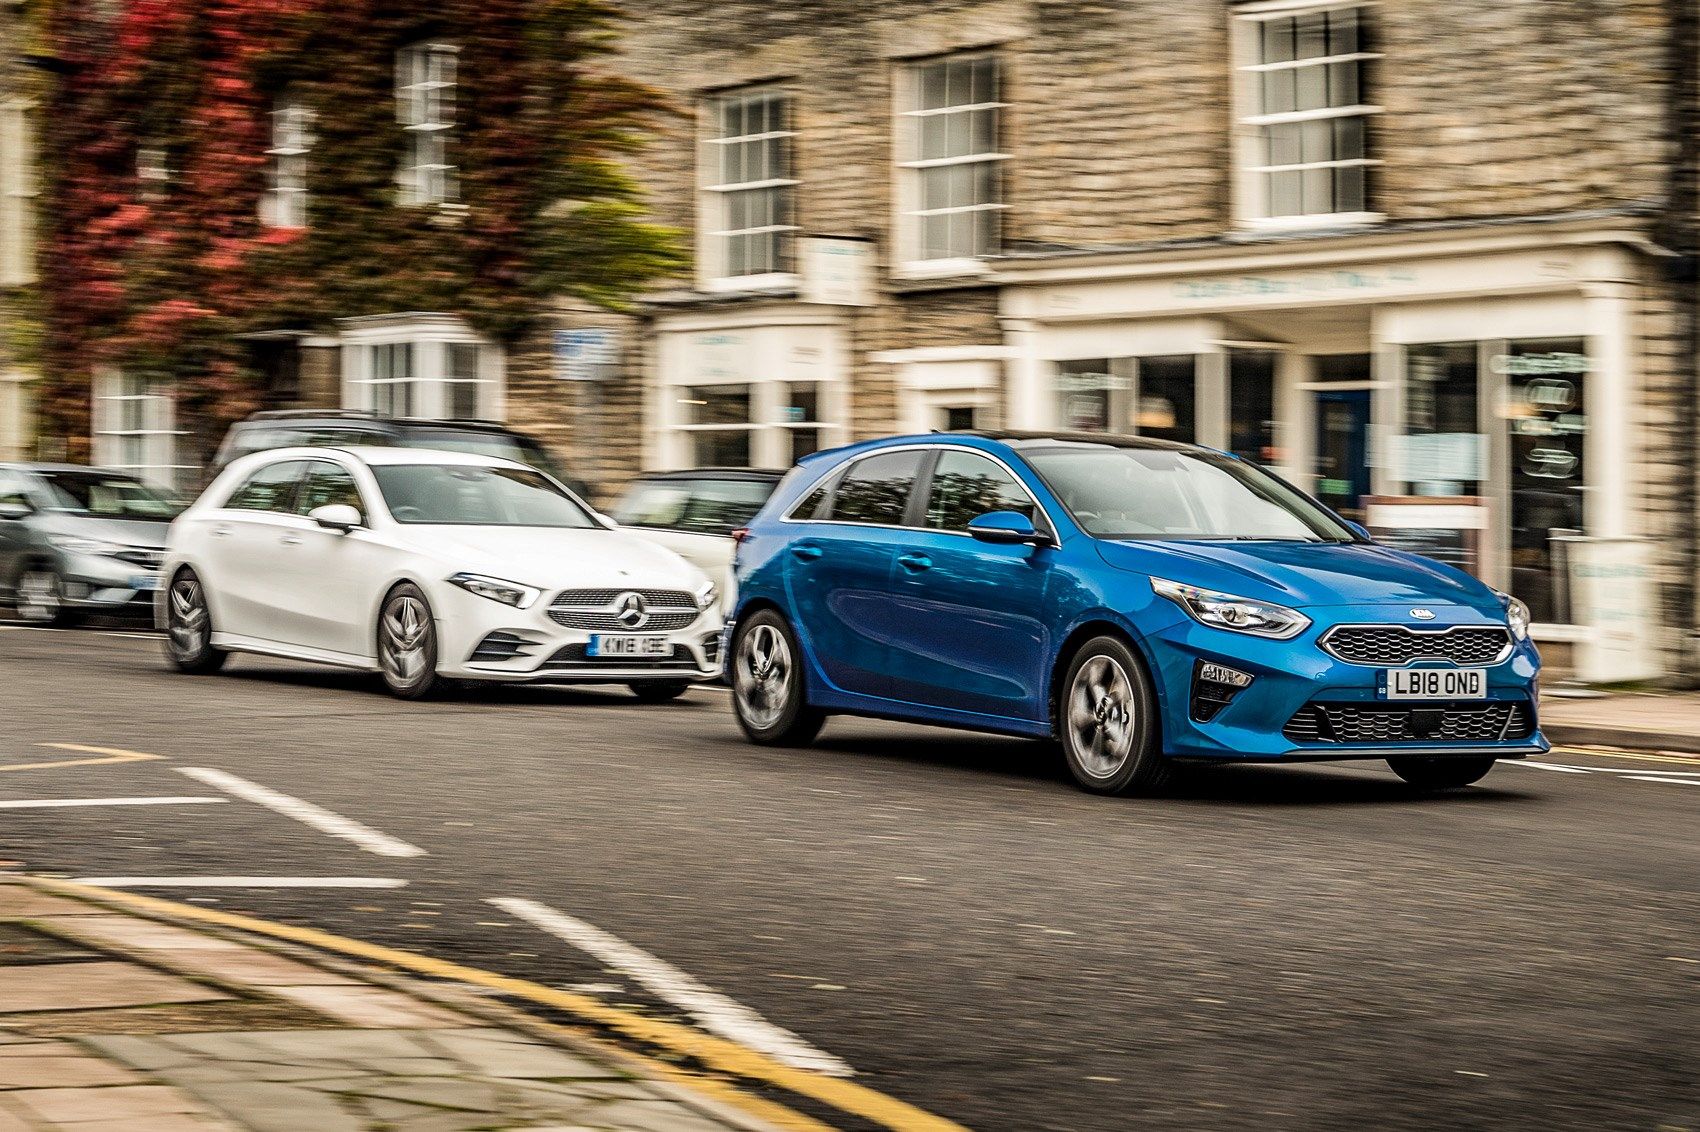 Best Hatchbacks 2019 Mercedes A Class Vs Ford Focus Vs Kia Ceed